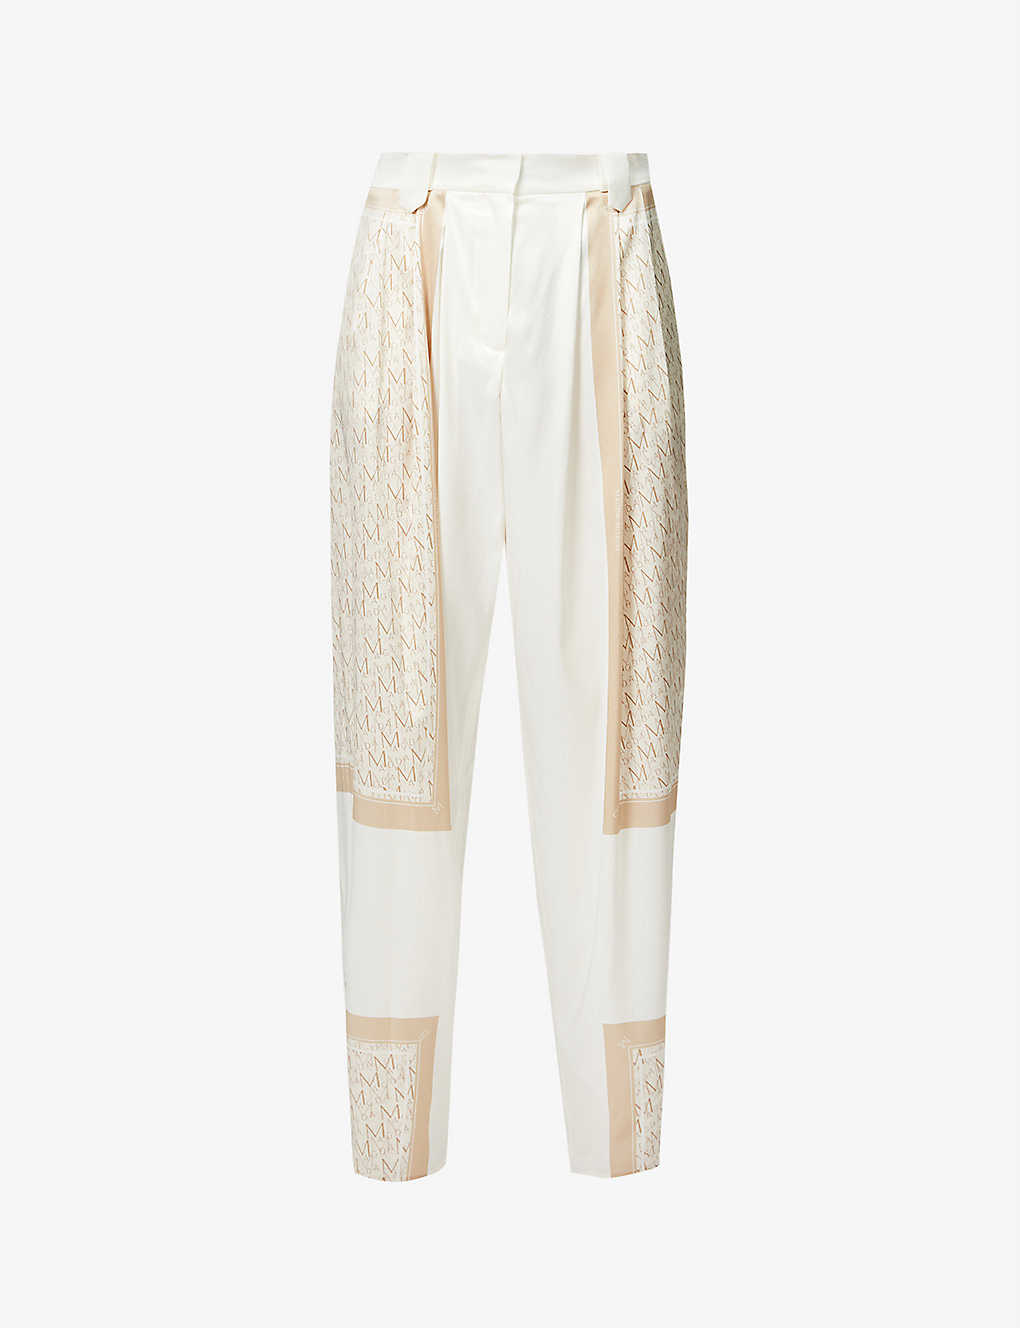 Branded-print wide-leg high-rise stretch-silk trousers by MAGDA BUTRYM, available on selfridges.com for $830 Candice Swanepoel Pants Exact Product